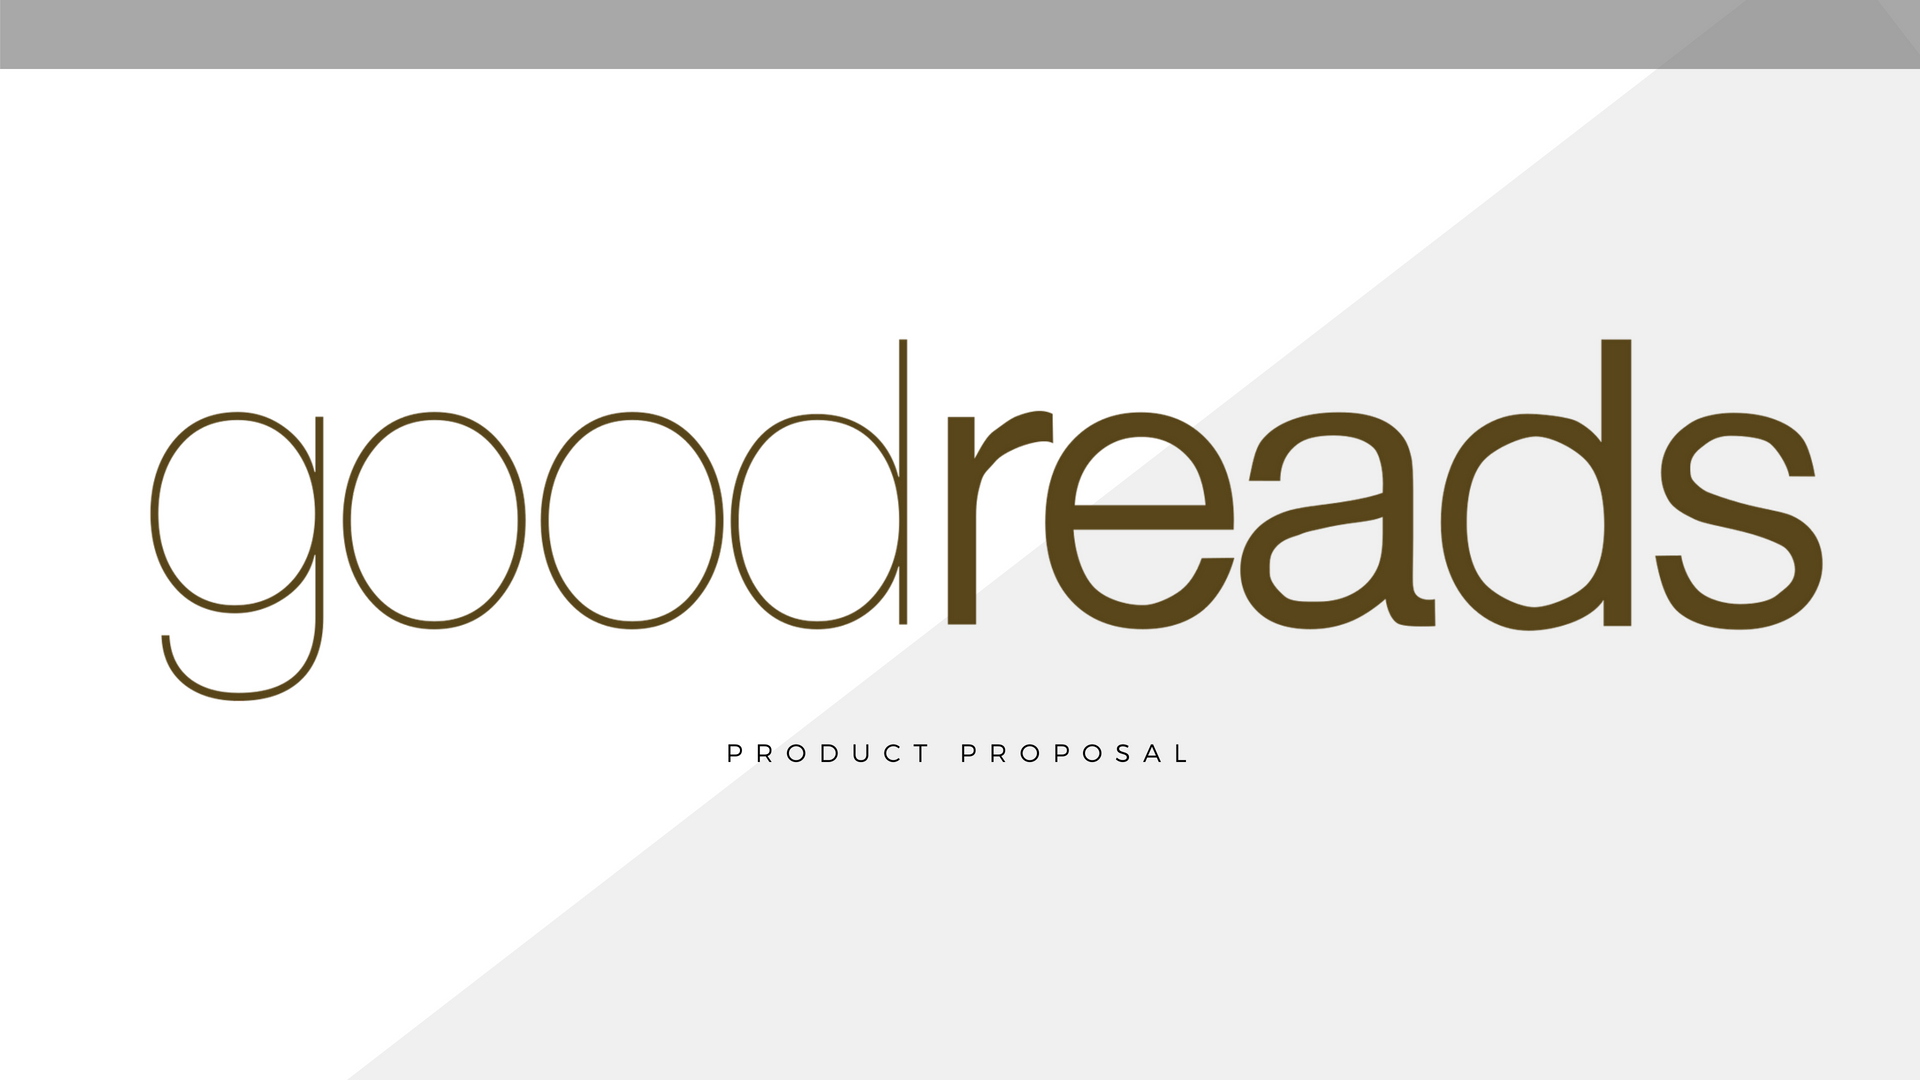 Goodreads Product Proposal